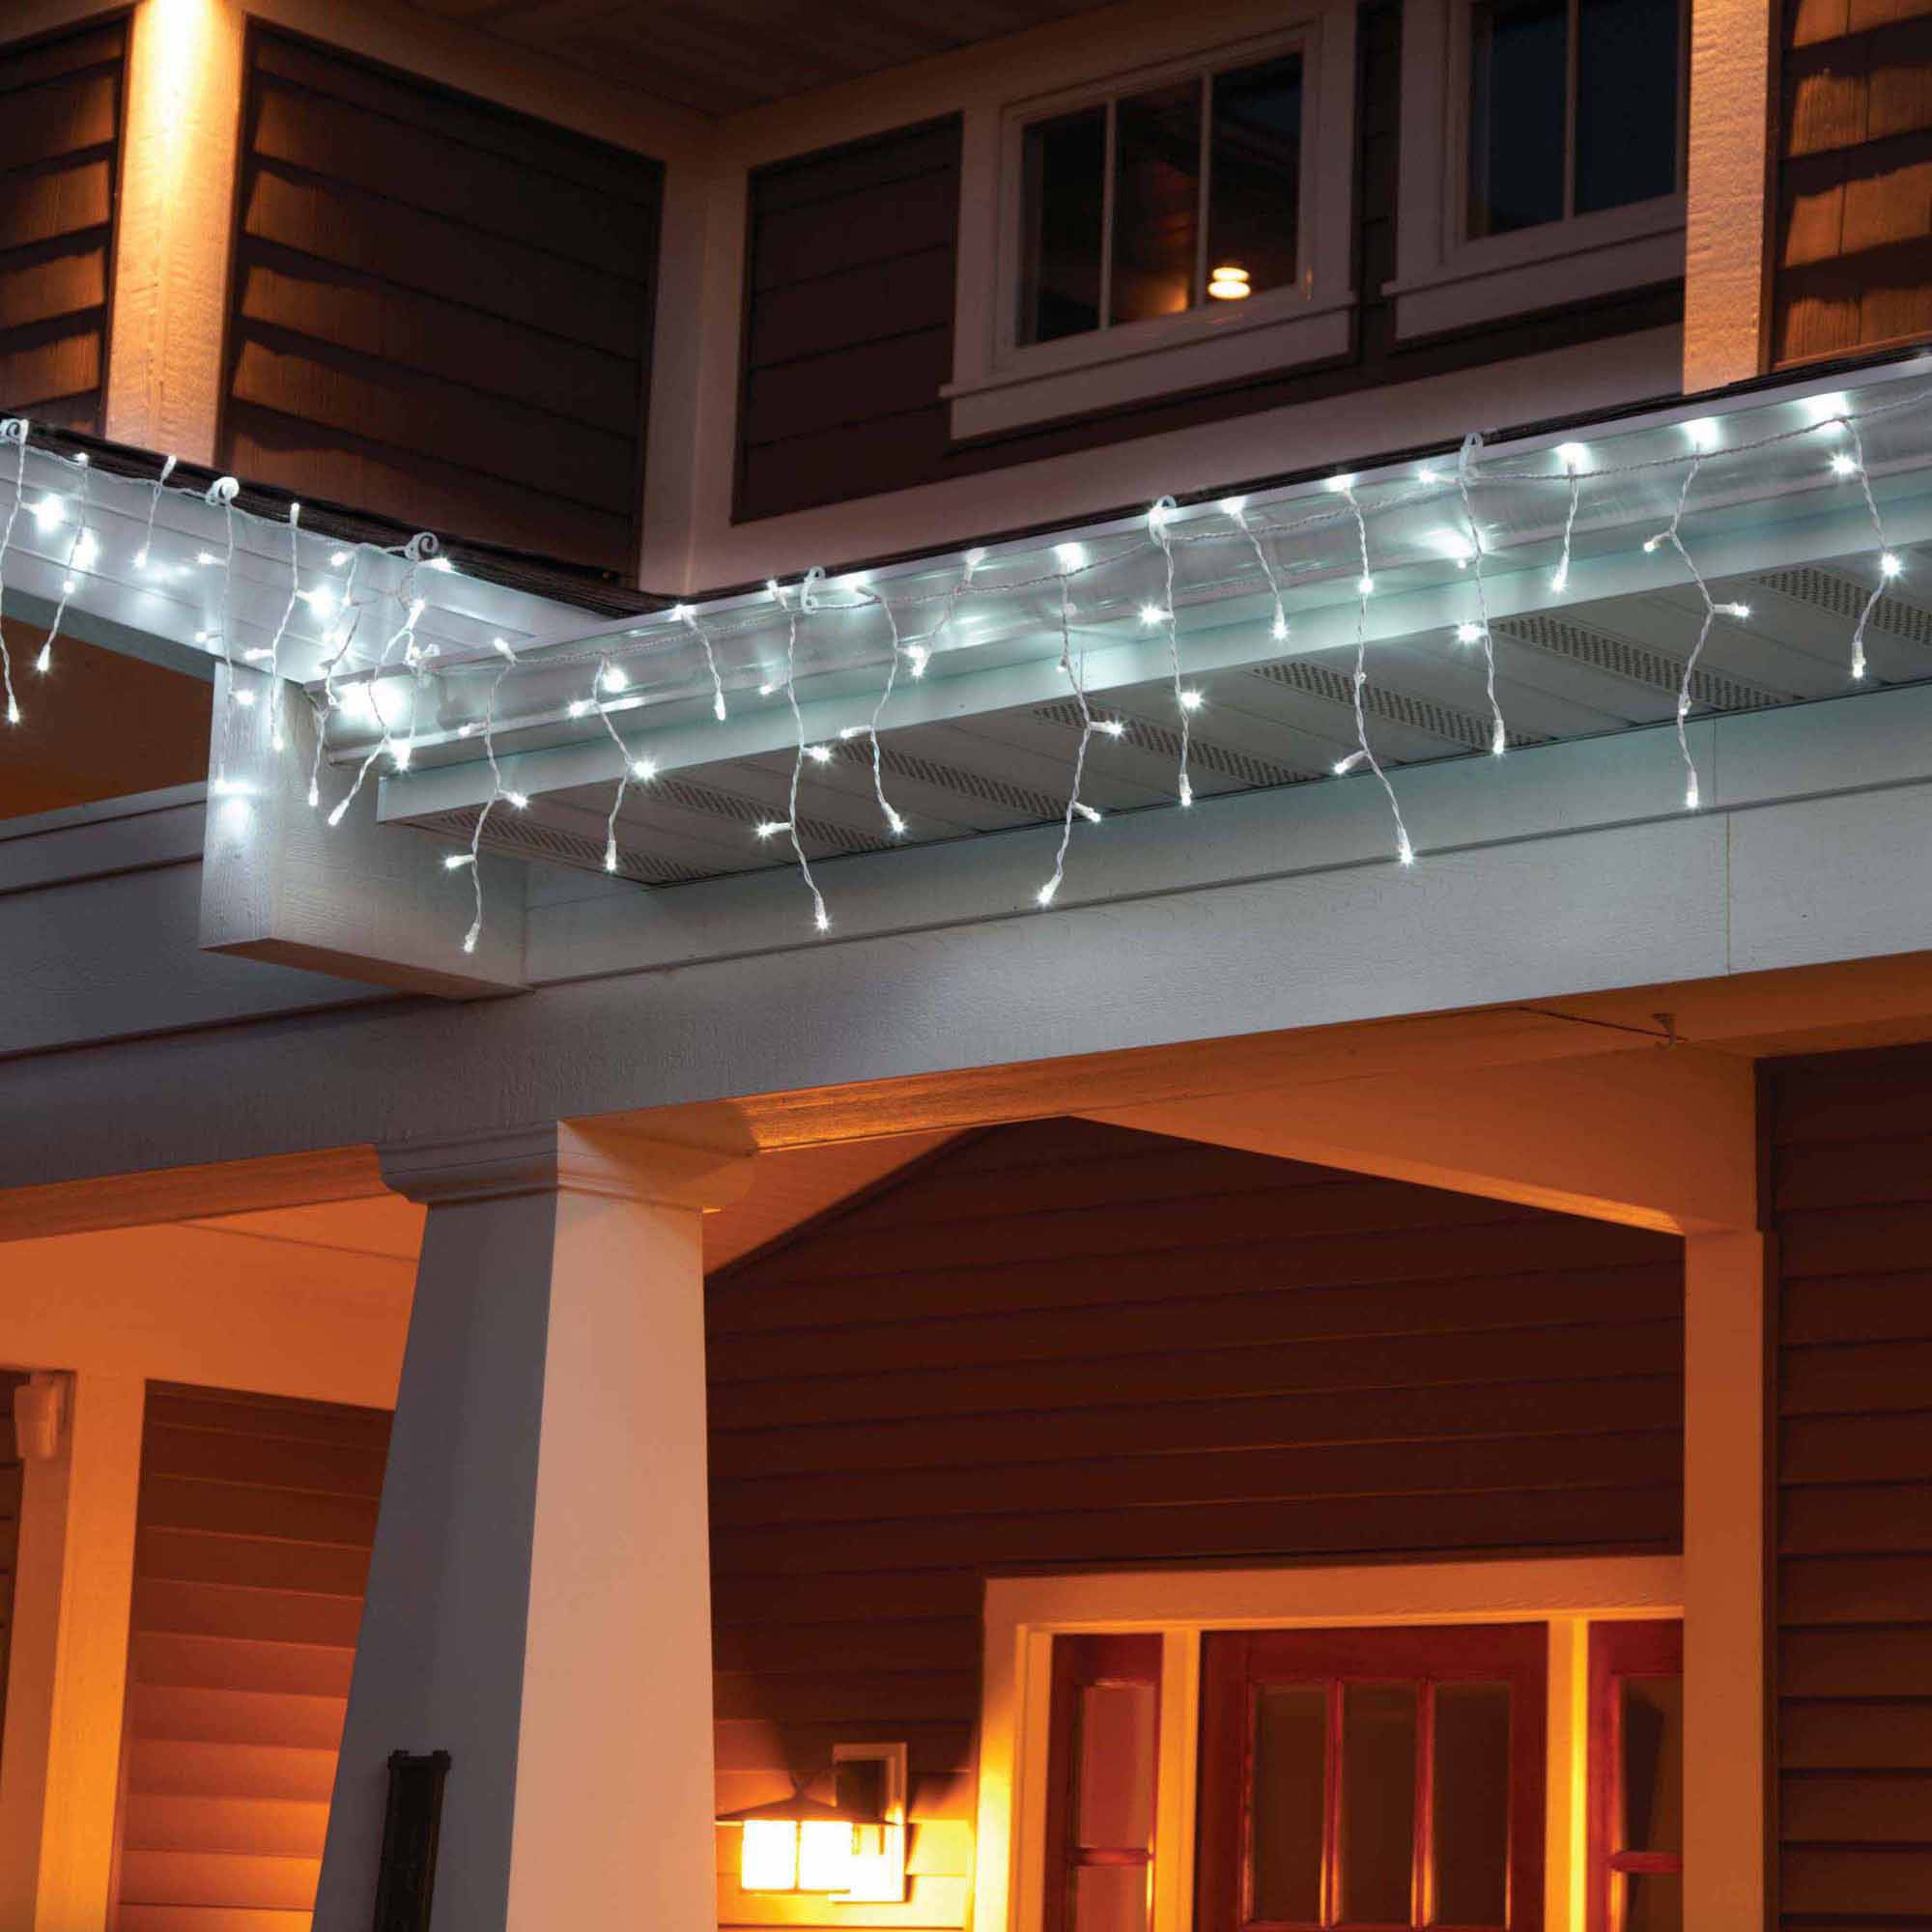 Holiday time christmas lights led twinkle icicle white light 25 holiday time christmas lights led twinkle icicle white light 25 count walmart workwithnaturefo